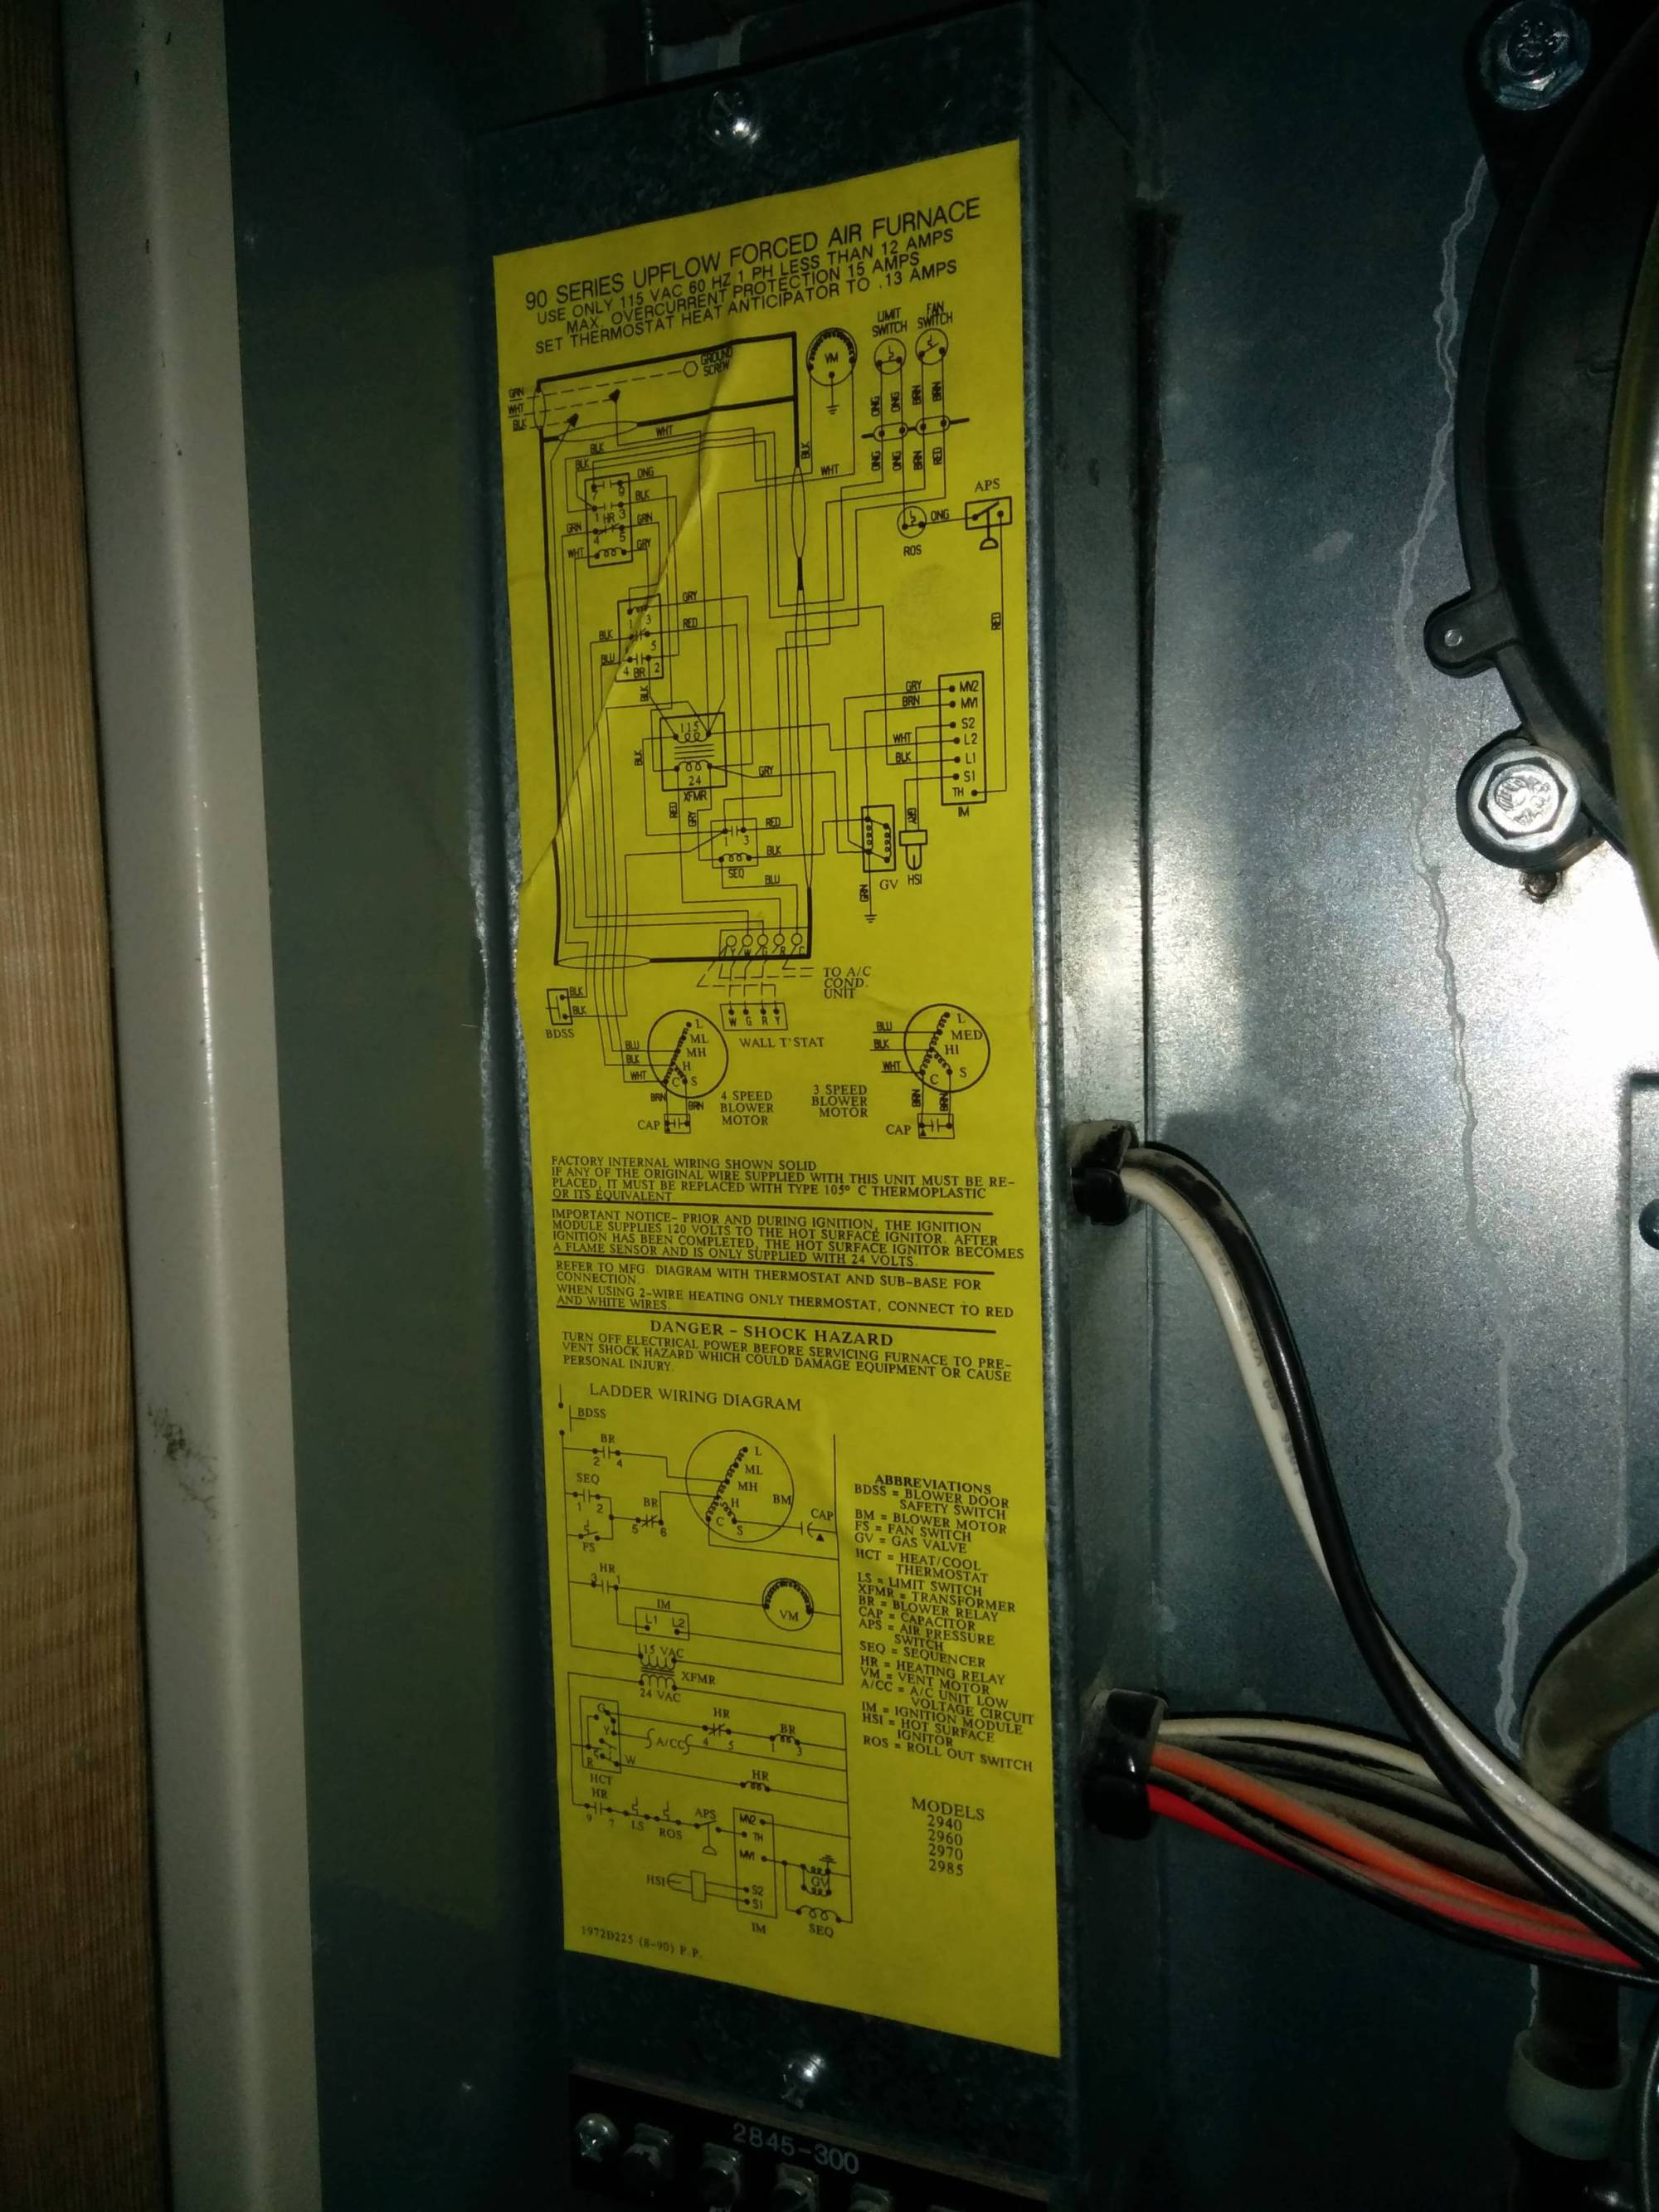 hight resolution of wiring diagram together with heat pump wiring diagram on ruud wiring